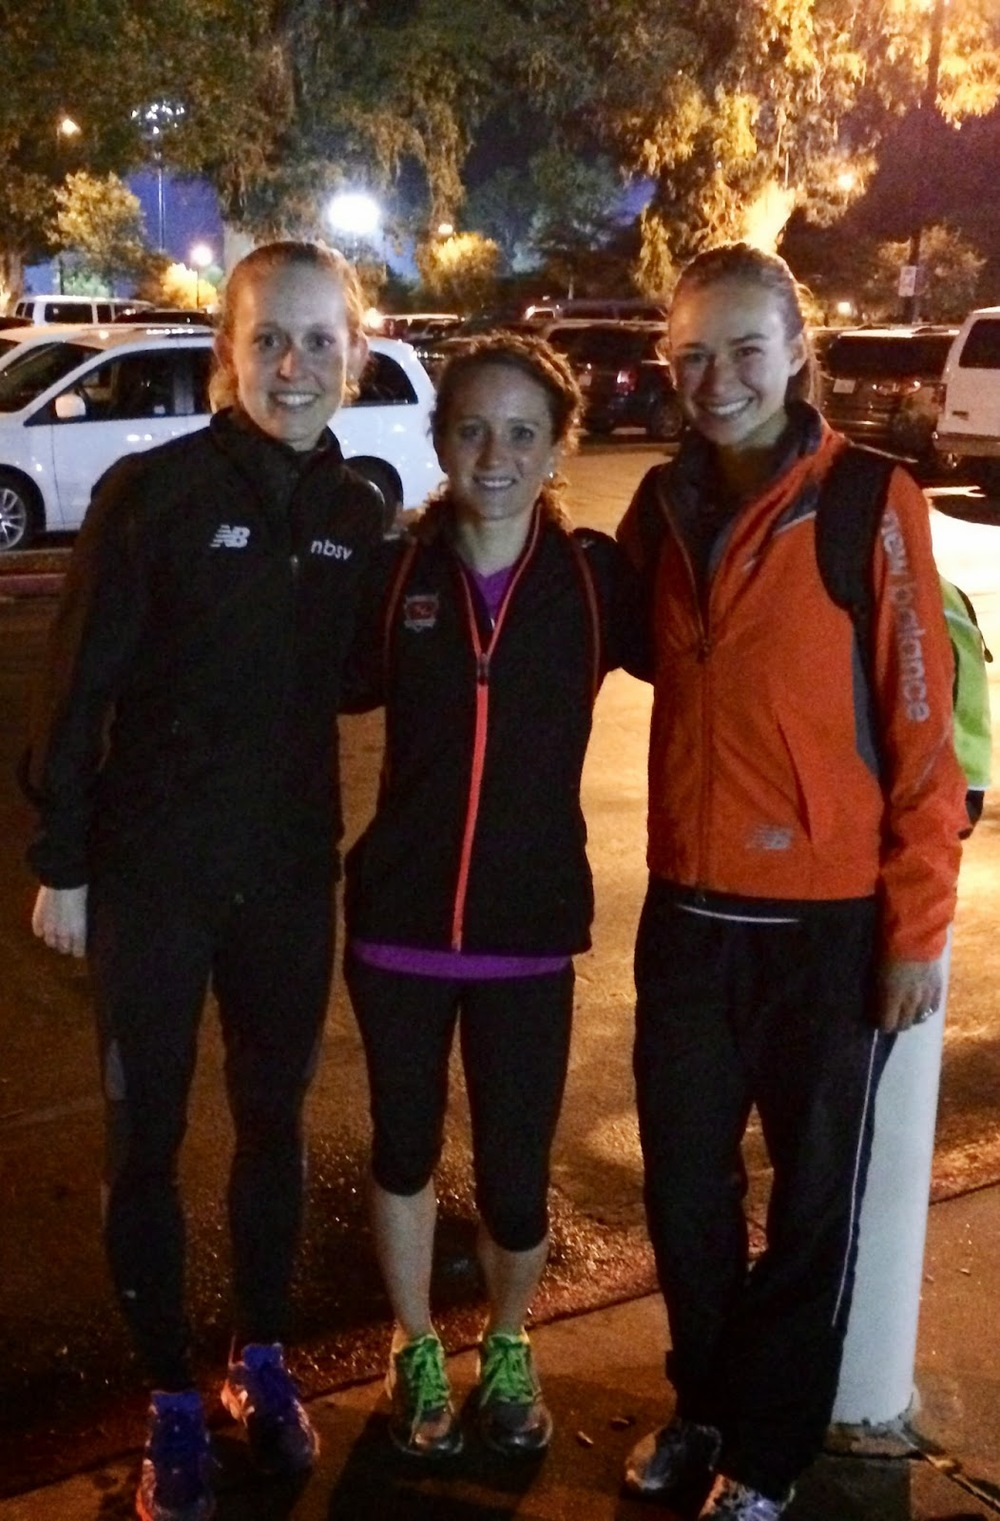 Post-race with Ohio training partner Nicole Camp and NBSV teammate Steph Dinius